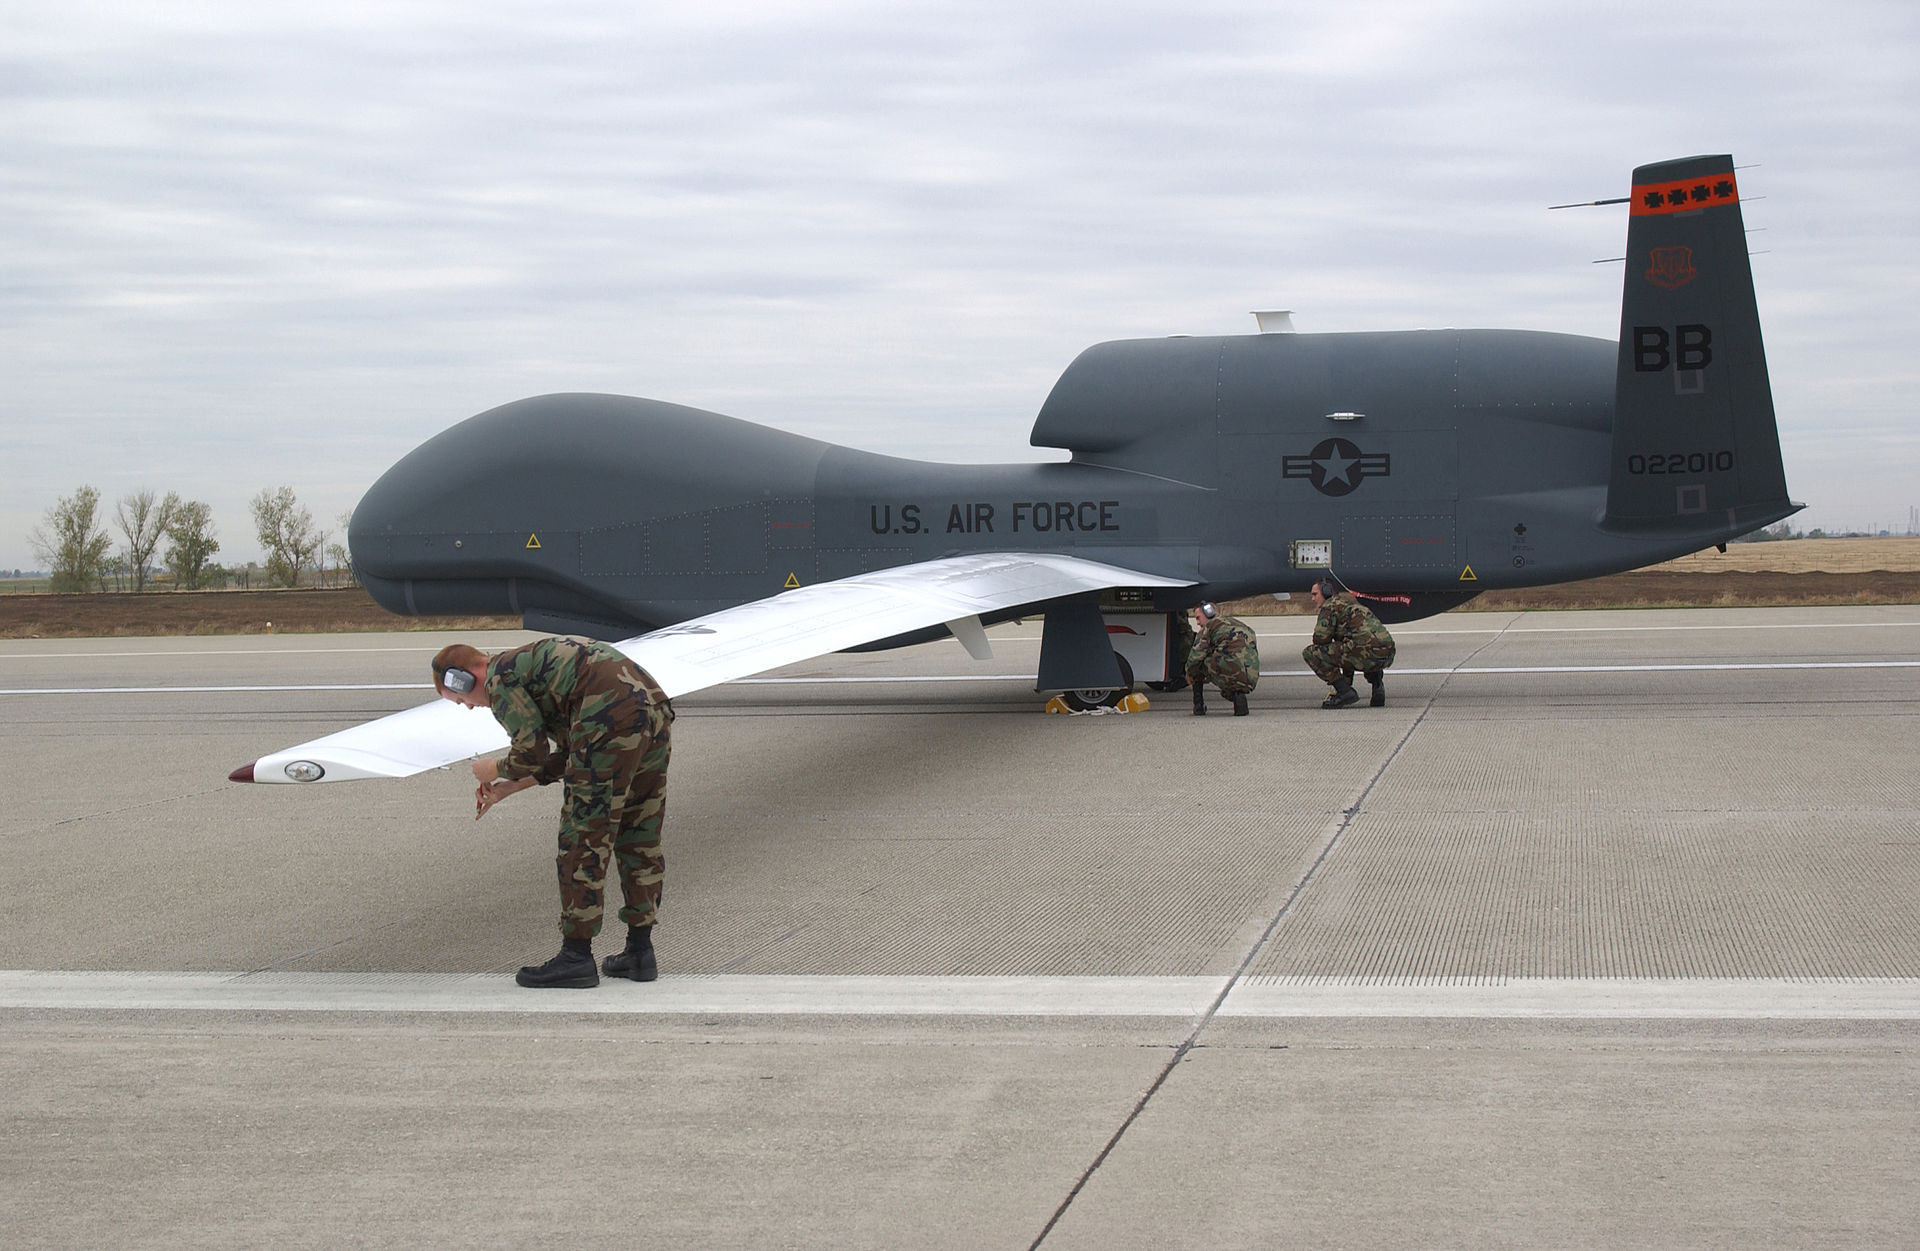 Global Hawk http://pl.wikipedia.org/wiki/RQ-4_Global_Hawk